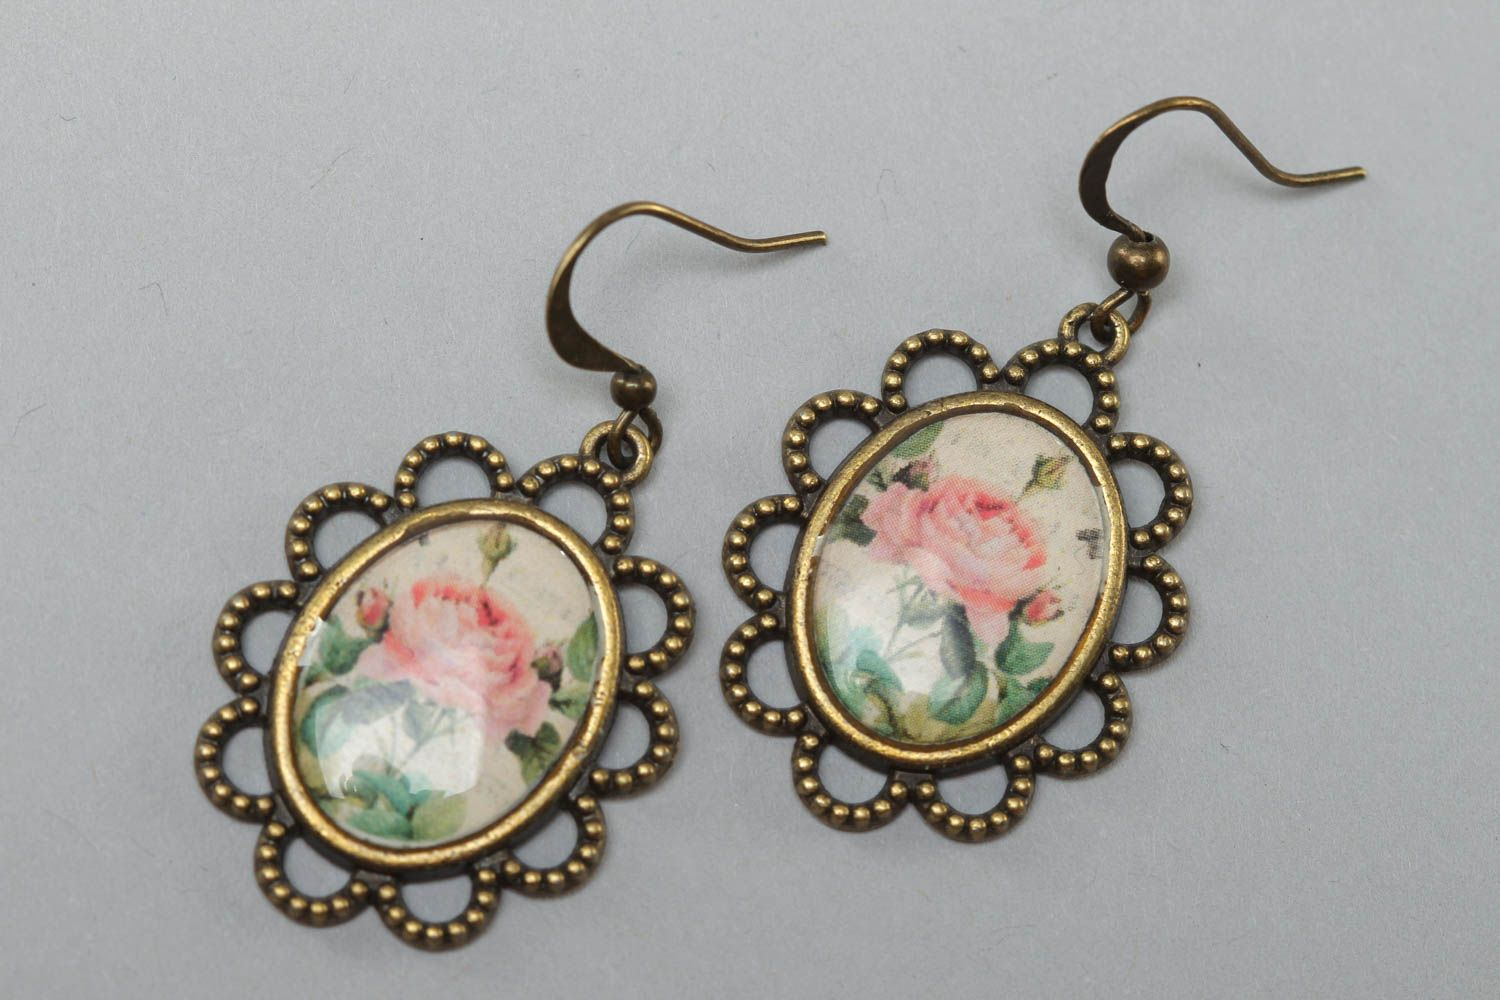 Women's beautiful handmade glass glaze oval earrings with roses photo 2